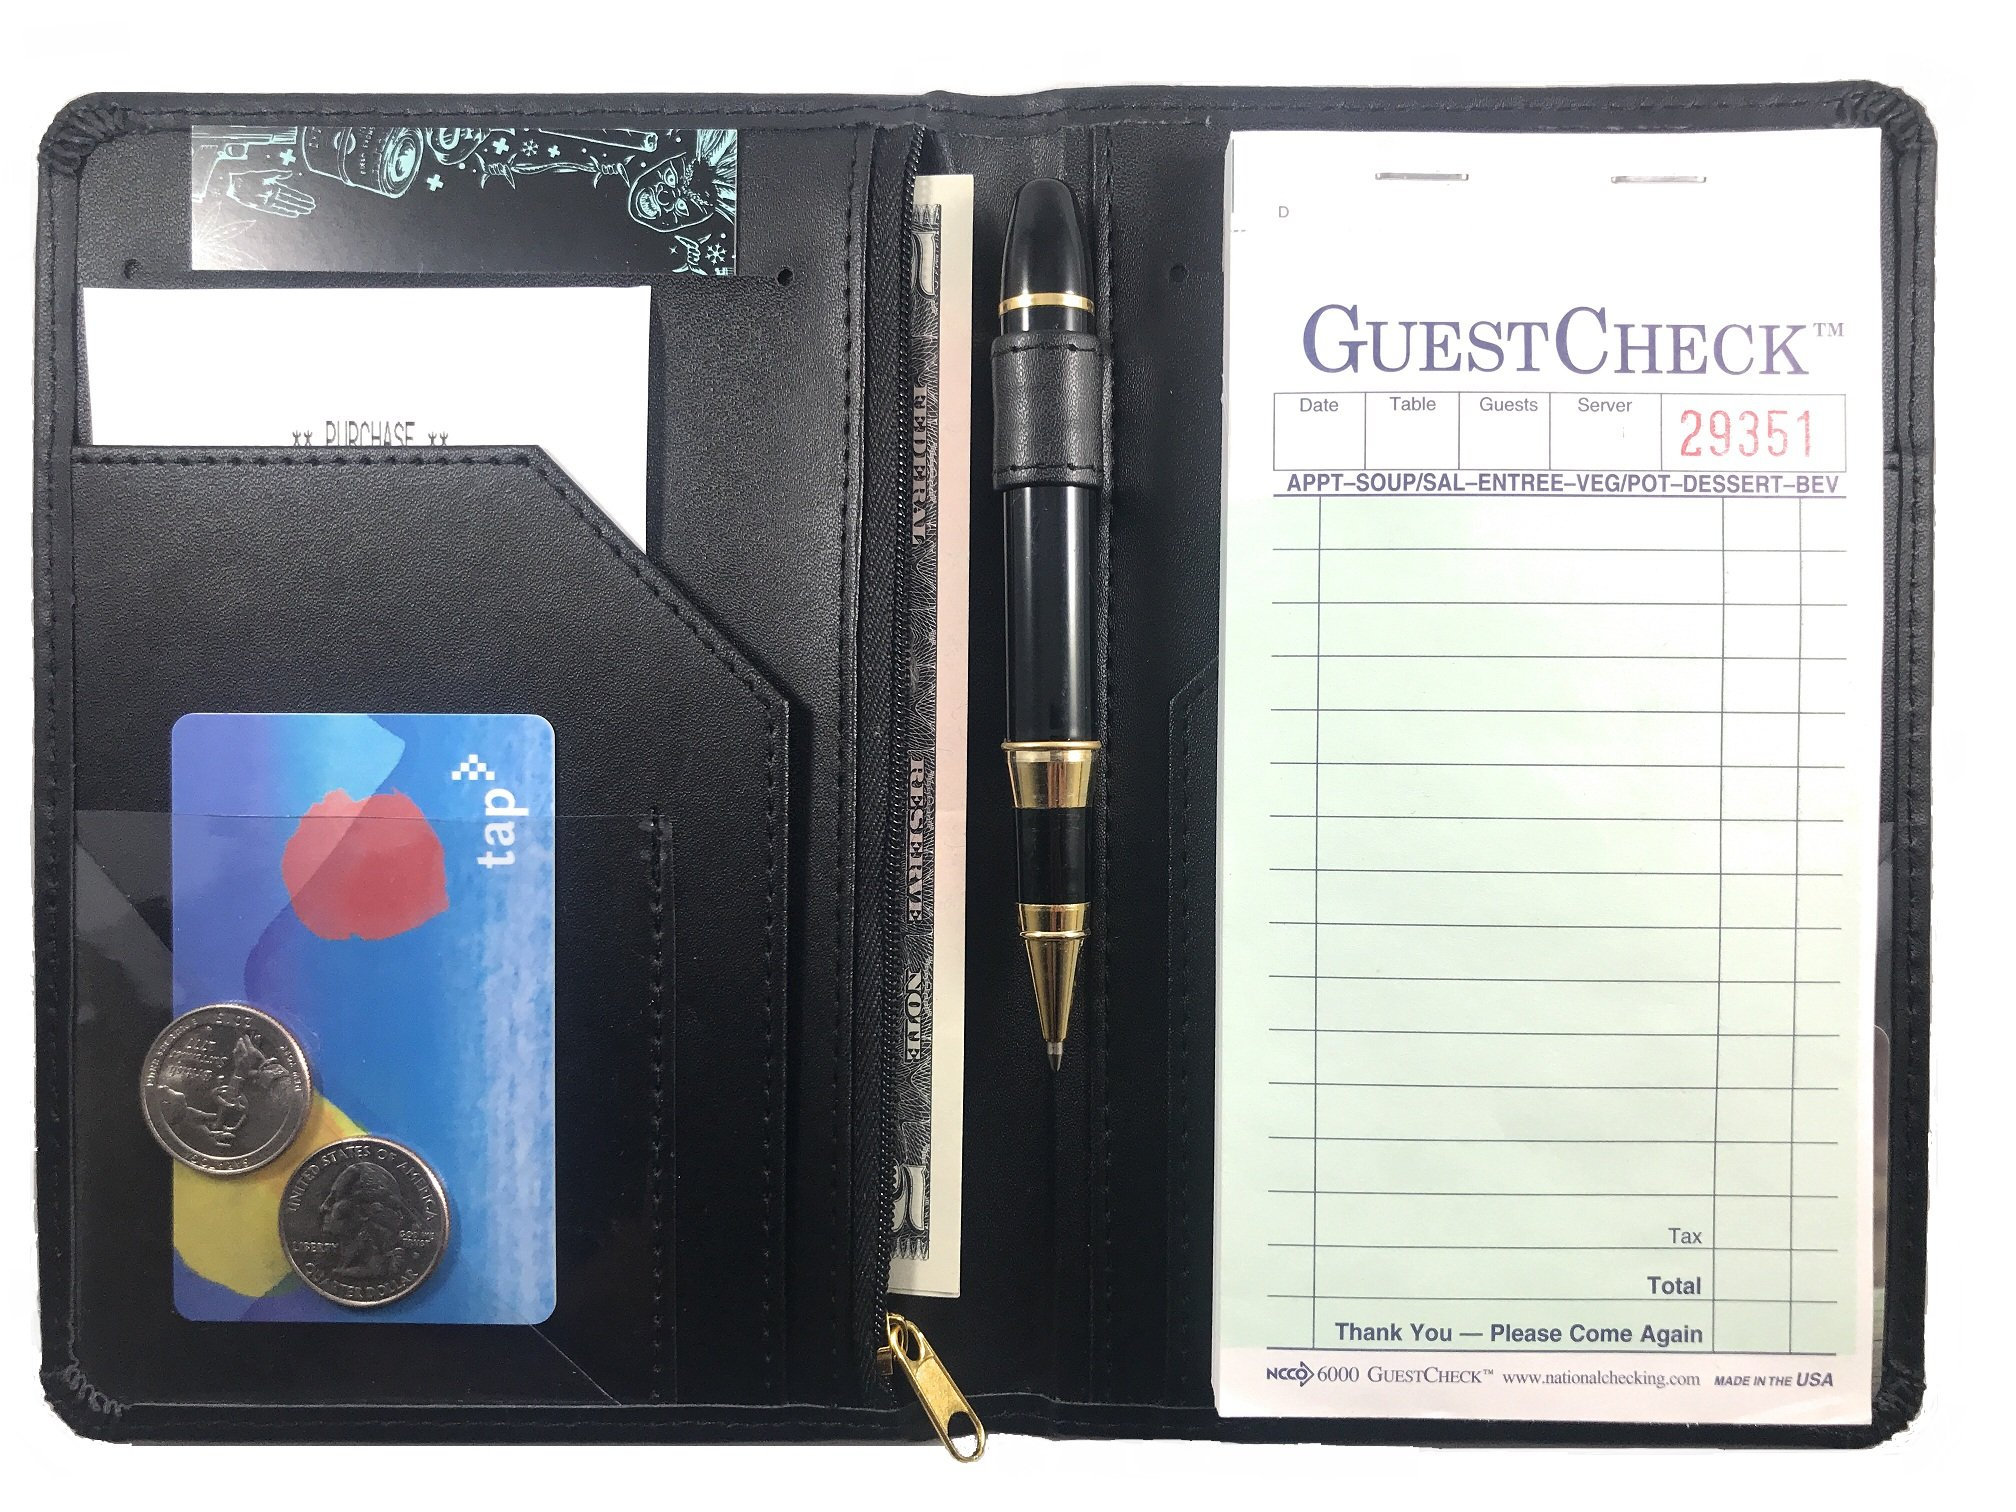 Waitress Server Book - Restaurant Waiter Wallet Notepad - Money Organizer - Guest Check - Zipper - 10 Pockets - 5 x 7.5 Inch